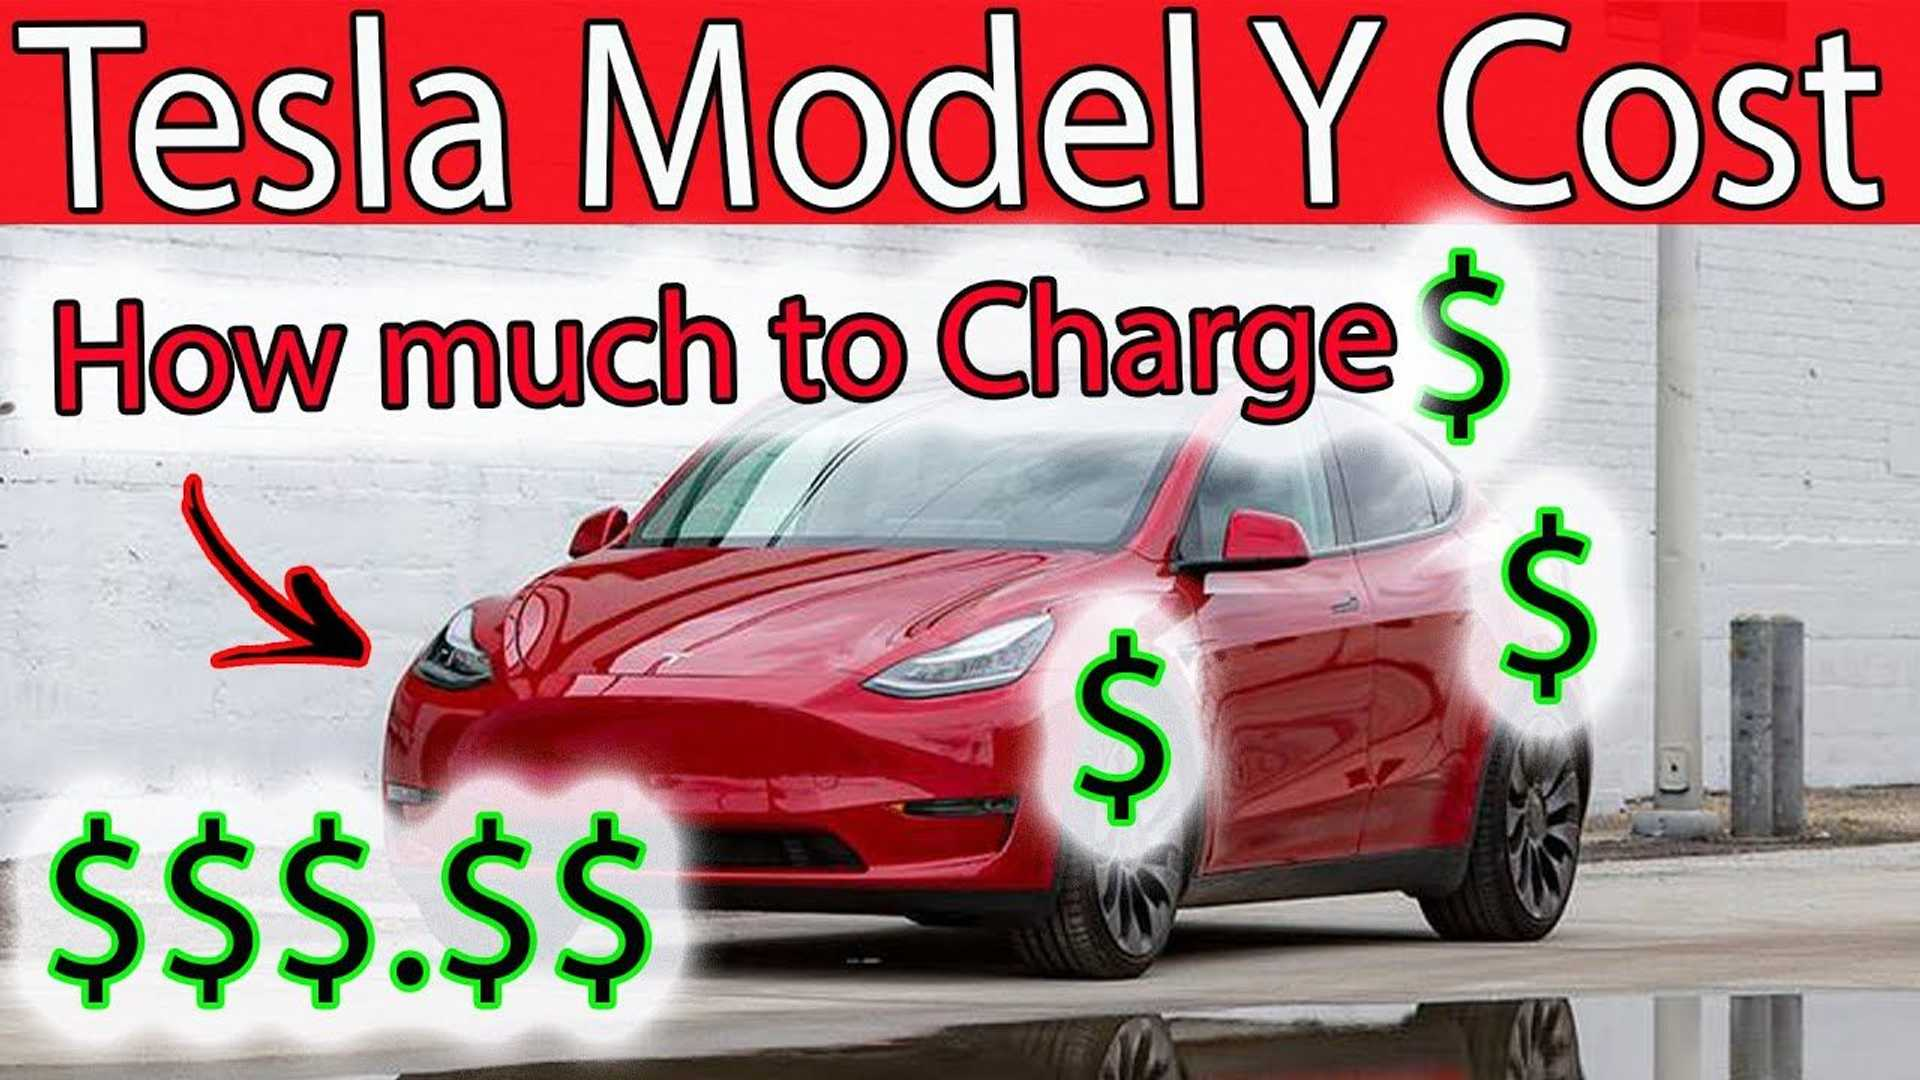 Tesla Model Y True Cost To Charge For One Year: Massive Savings